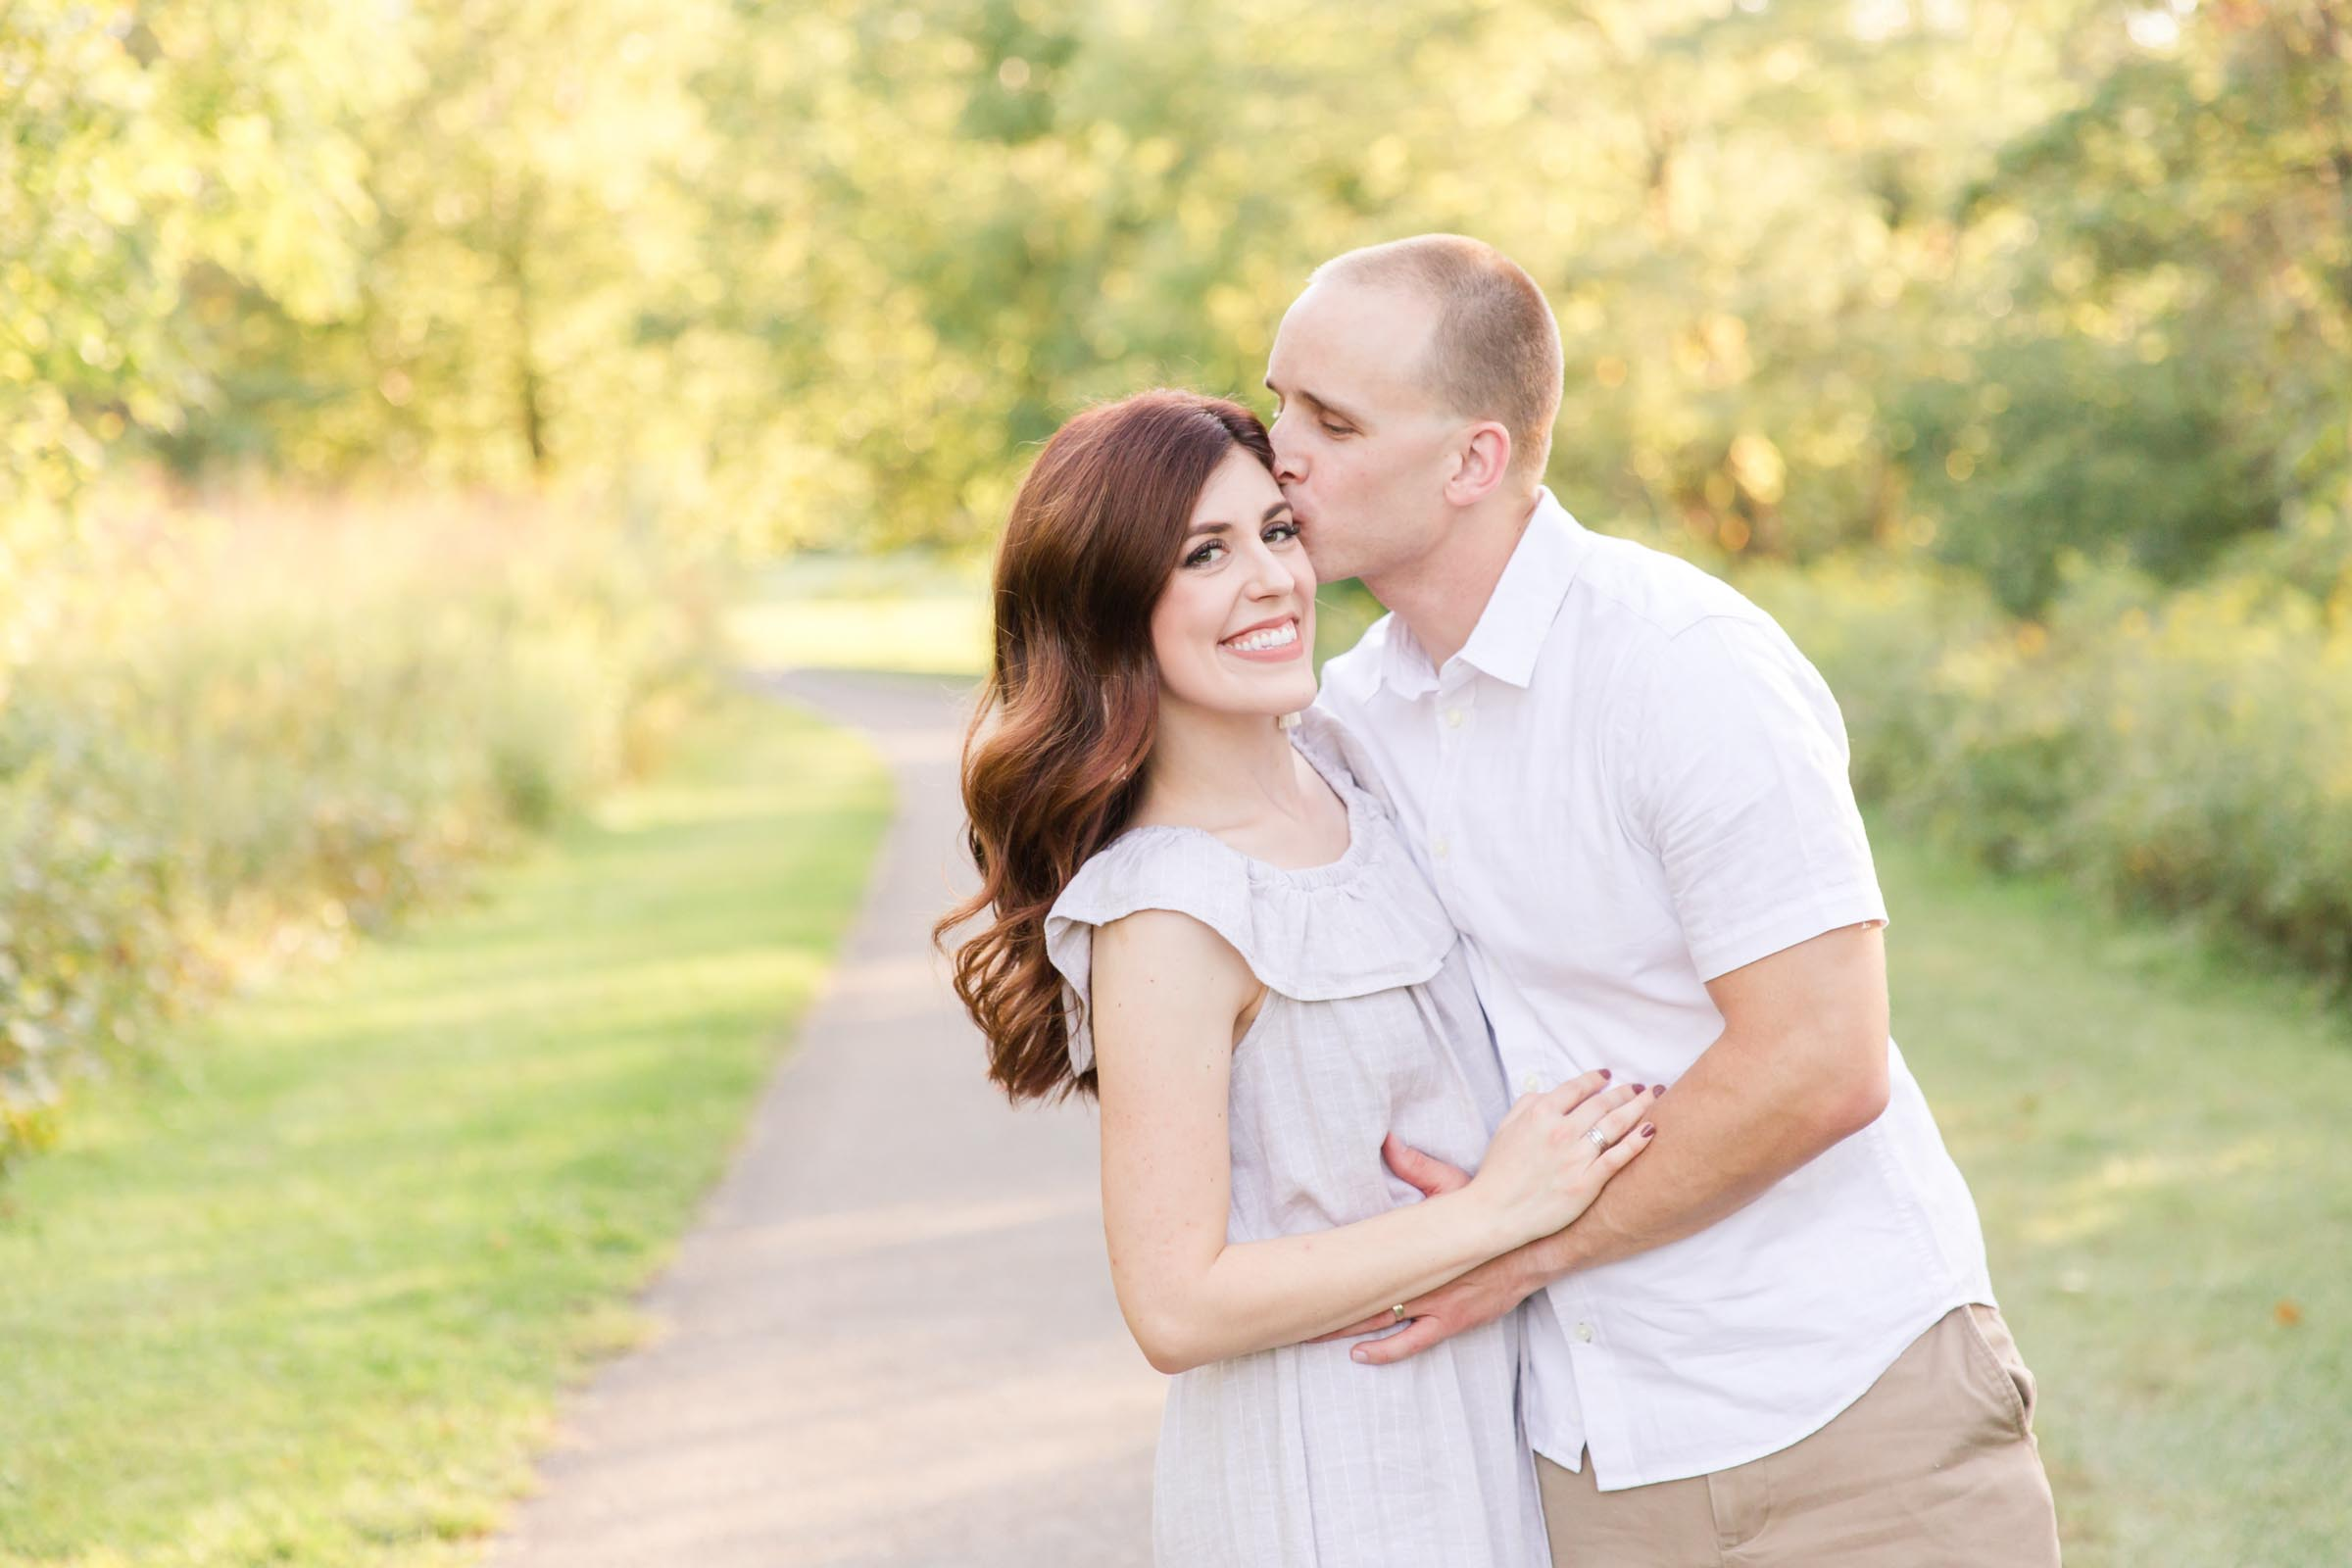 Family photo outfit ideas, outdoor family portraits, casual family photos, fall family photos, summer family photos